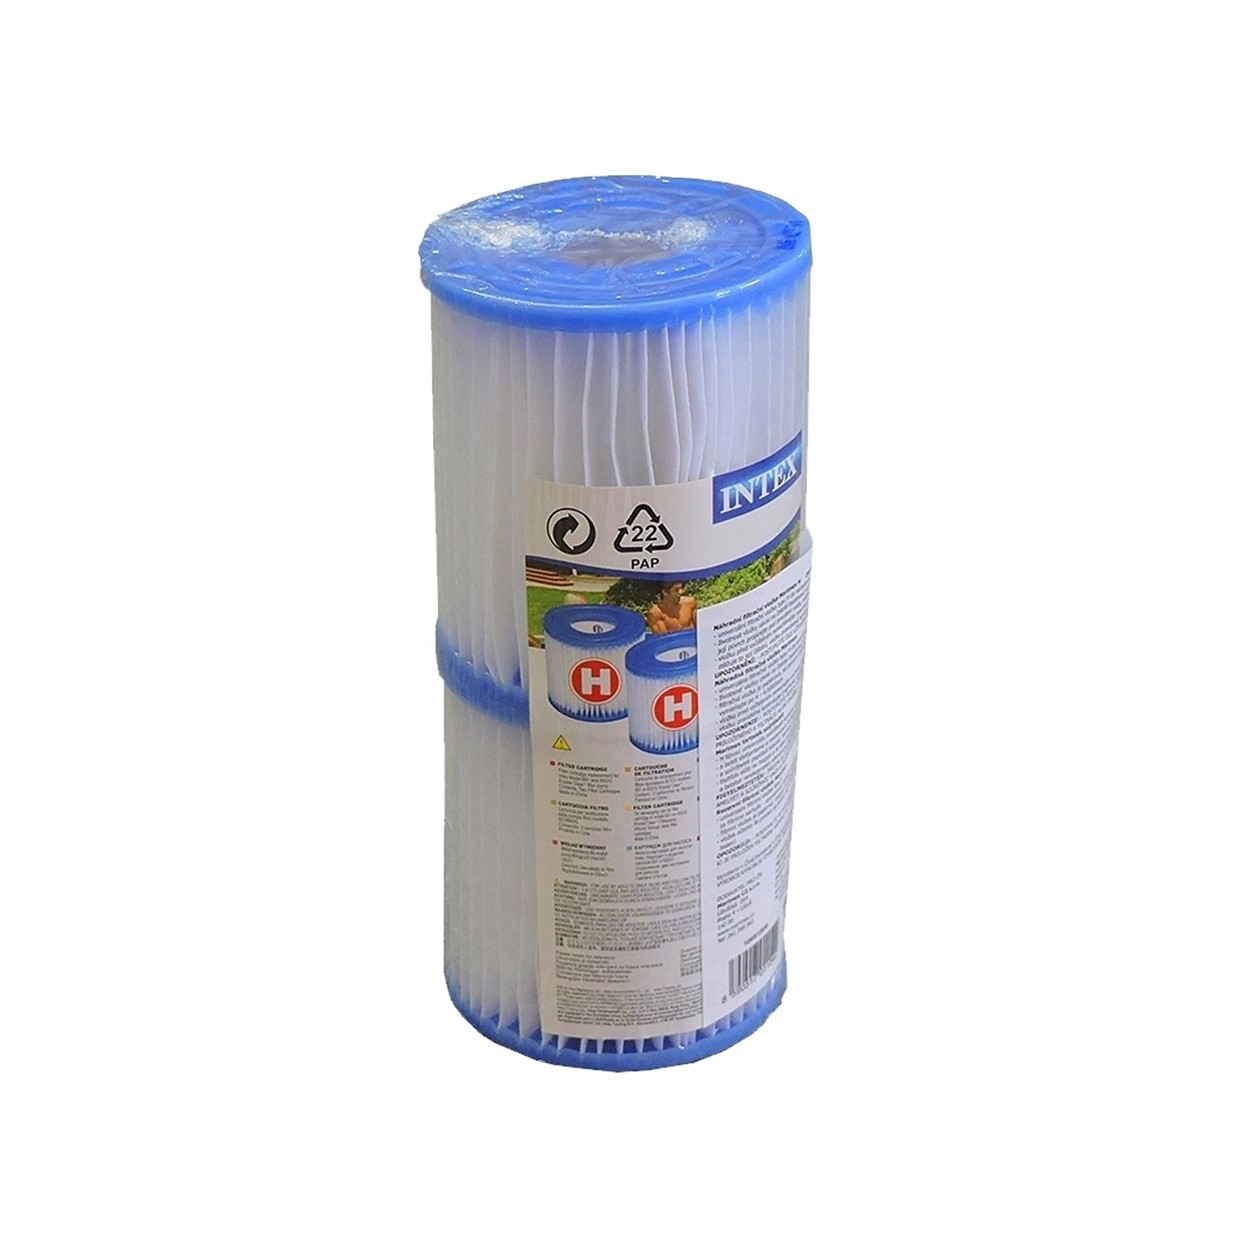 Filter Intex Zwembad Vervangen Intex Filter Cartridge Type H - 2 Stuks - De Boer Drachten